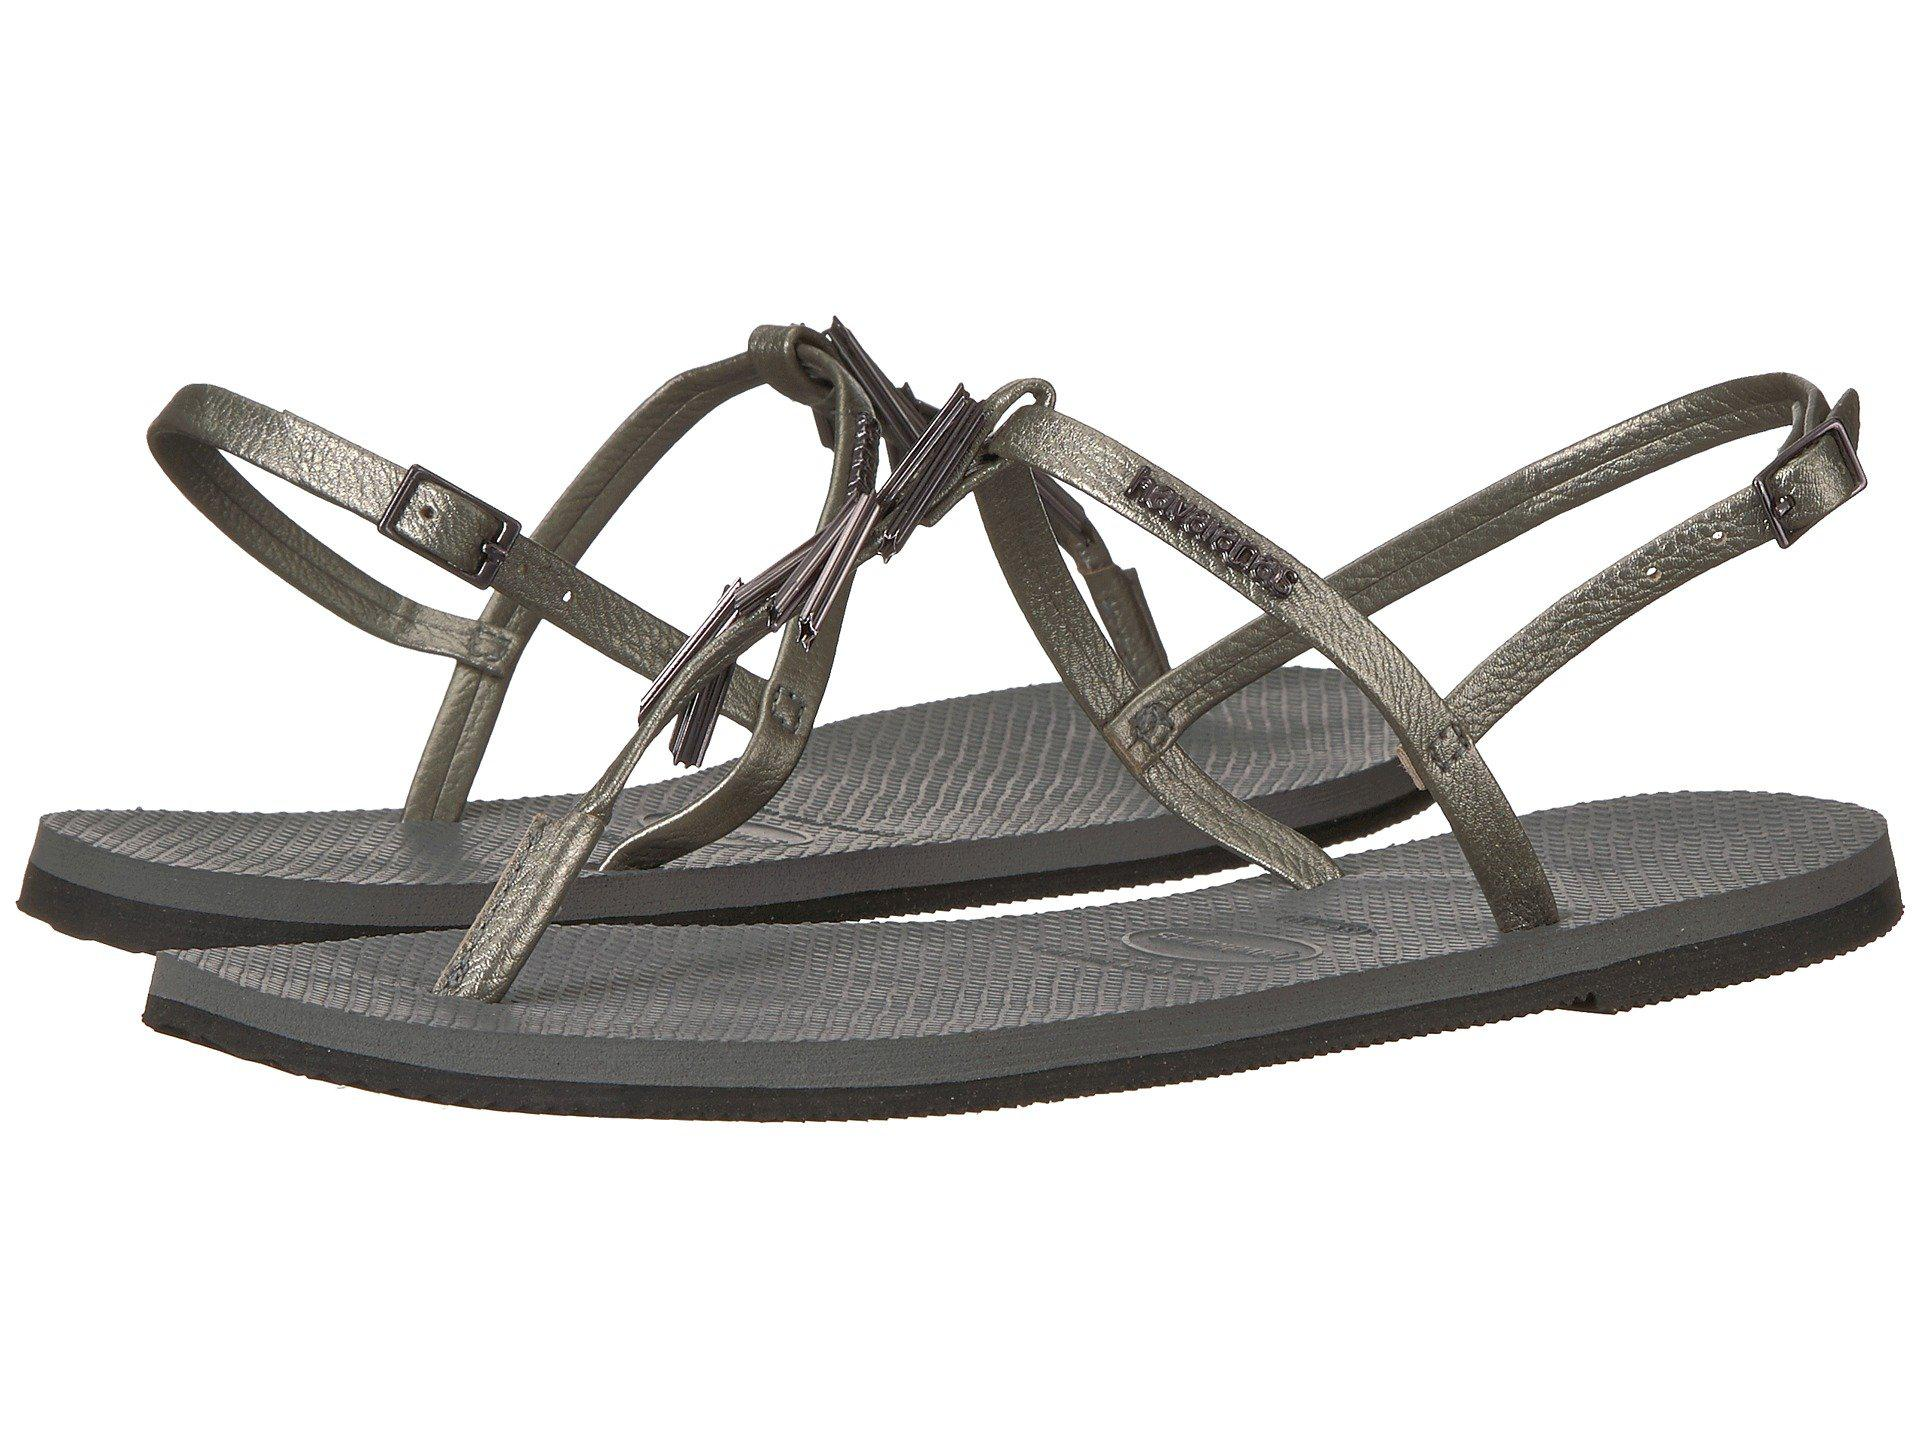 c308ef4b2f10c4 Lyst - Havaianas You Riviera Maxi Sandals in Gray - Save 26%